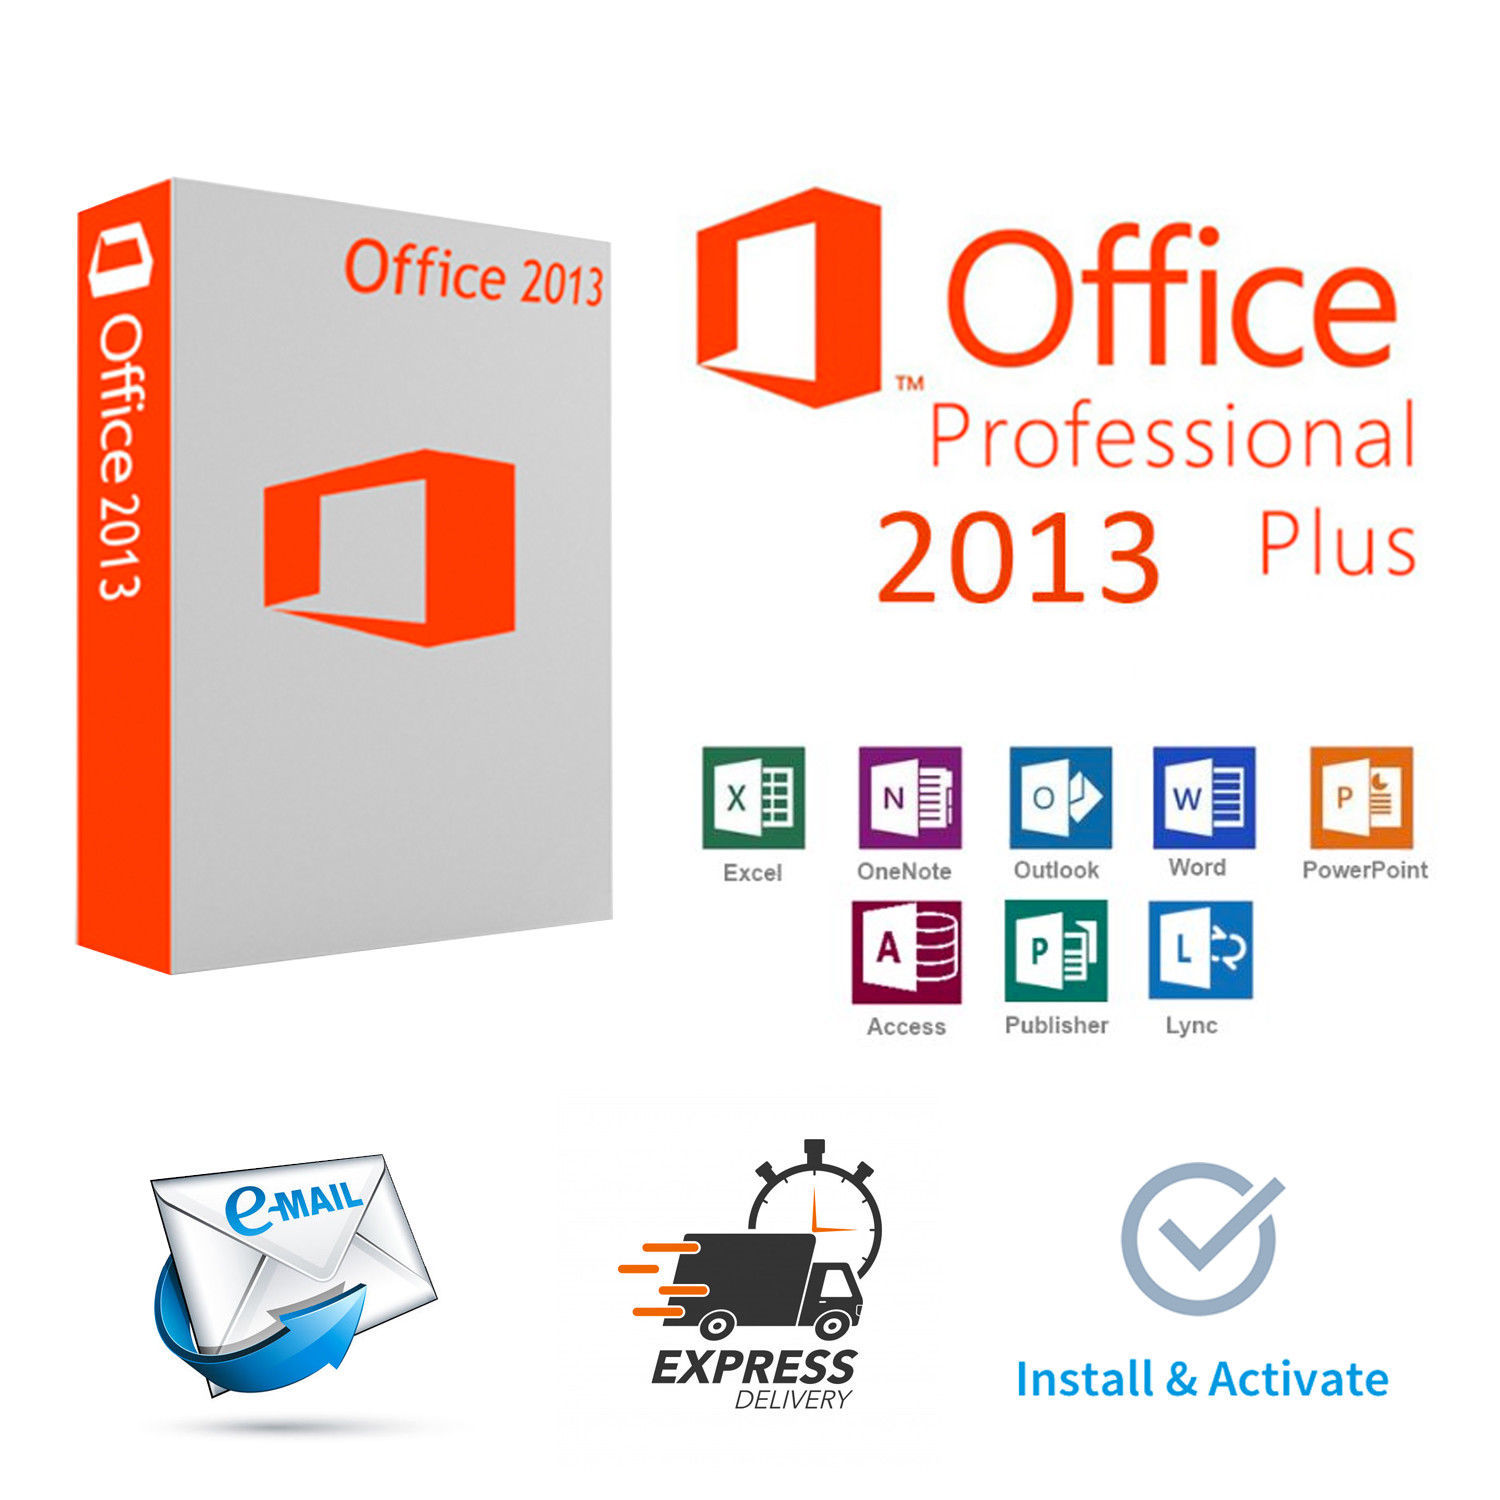 Microsoft office 2013 professional plus license key bonanza message delivery office business - Office professional plus 2013 license key ...